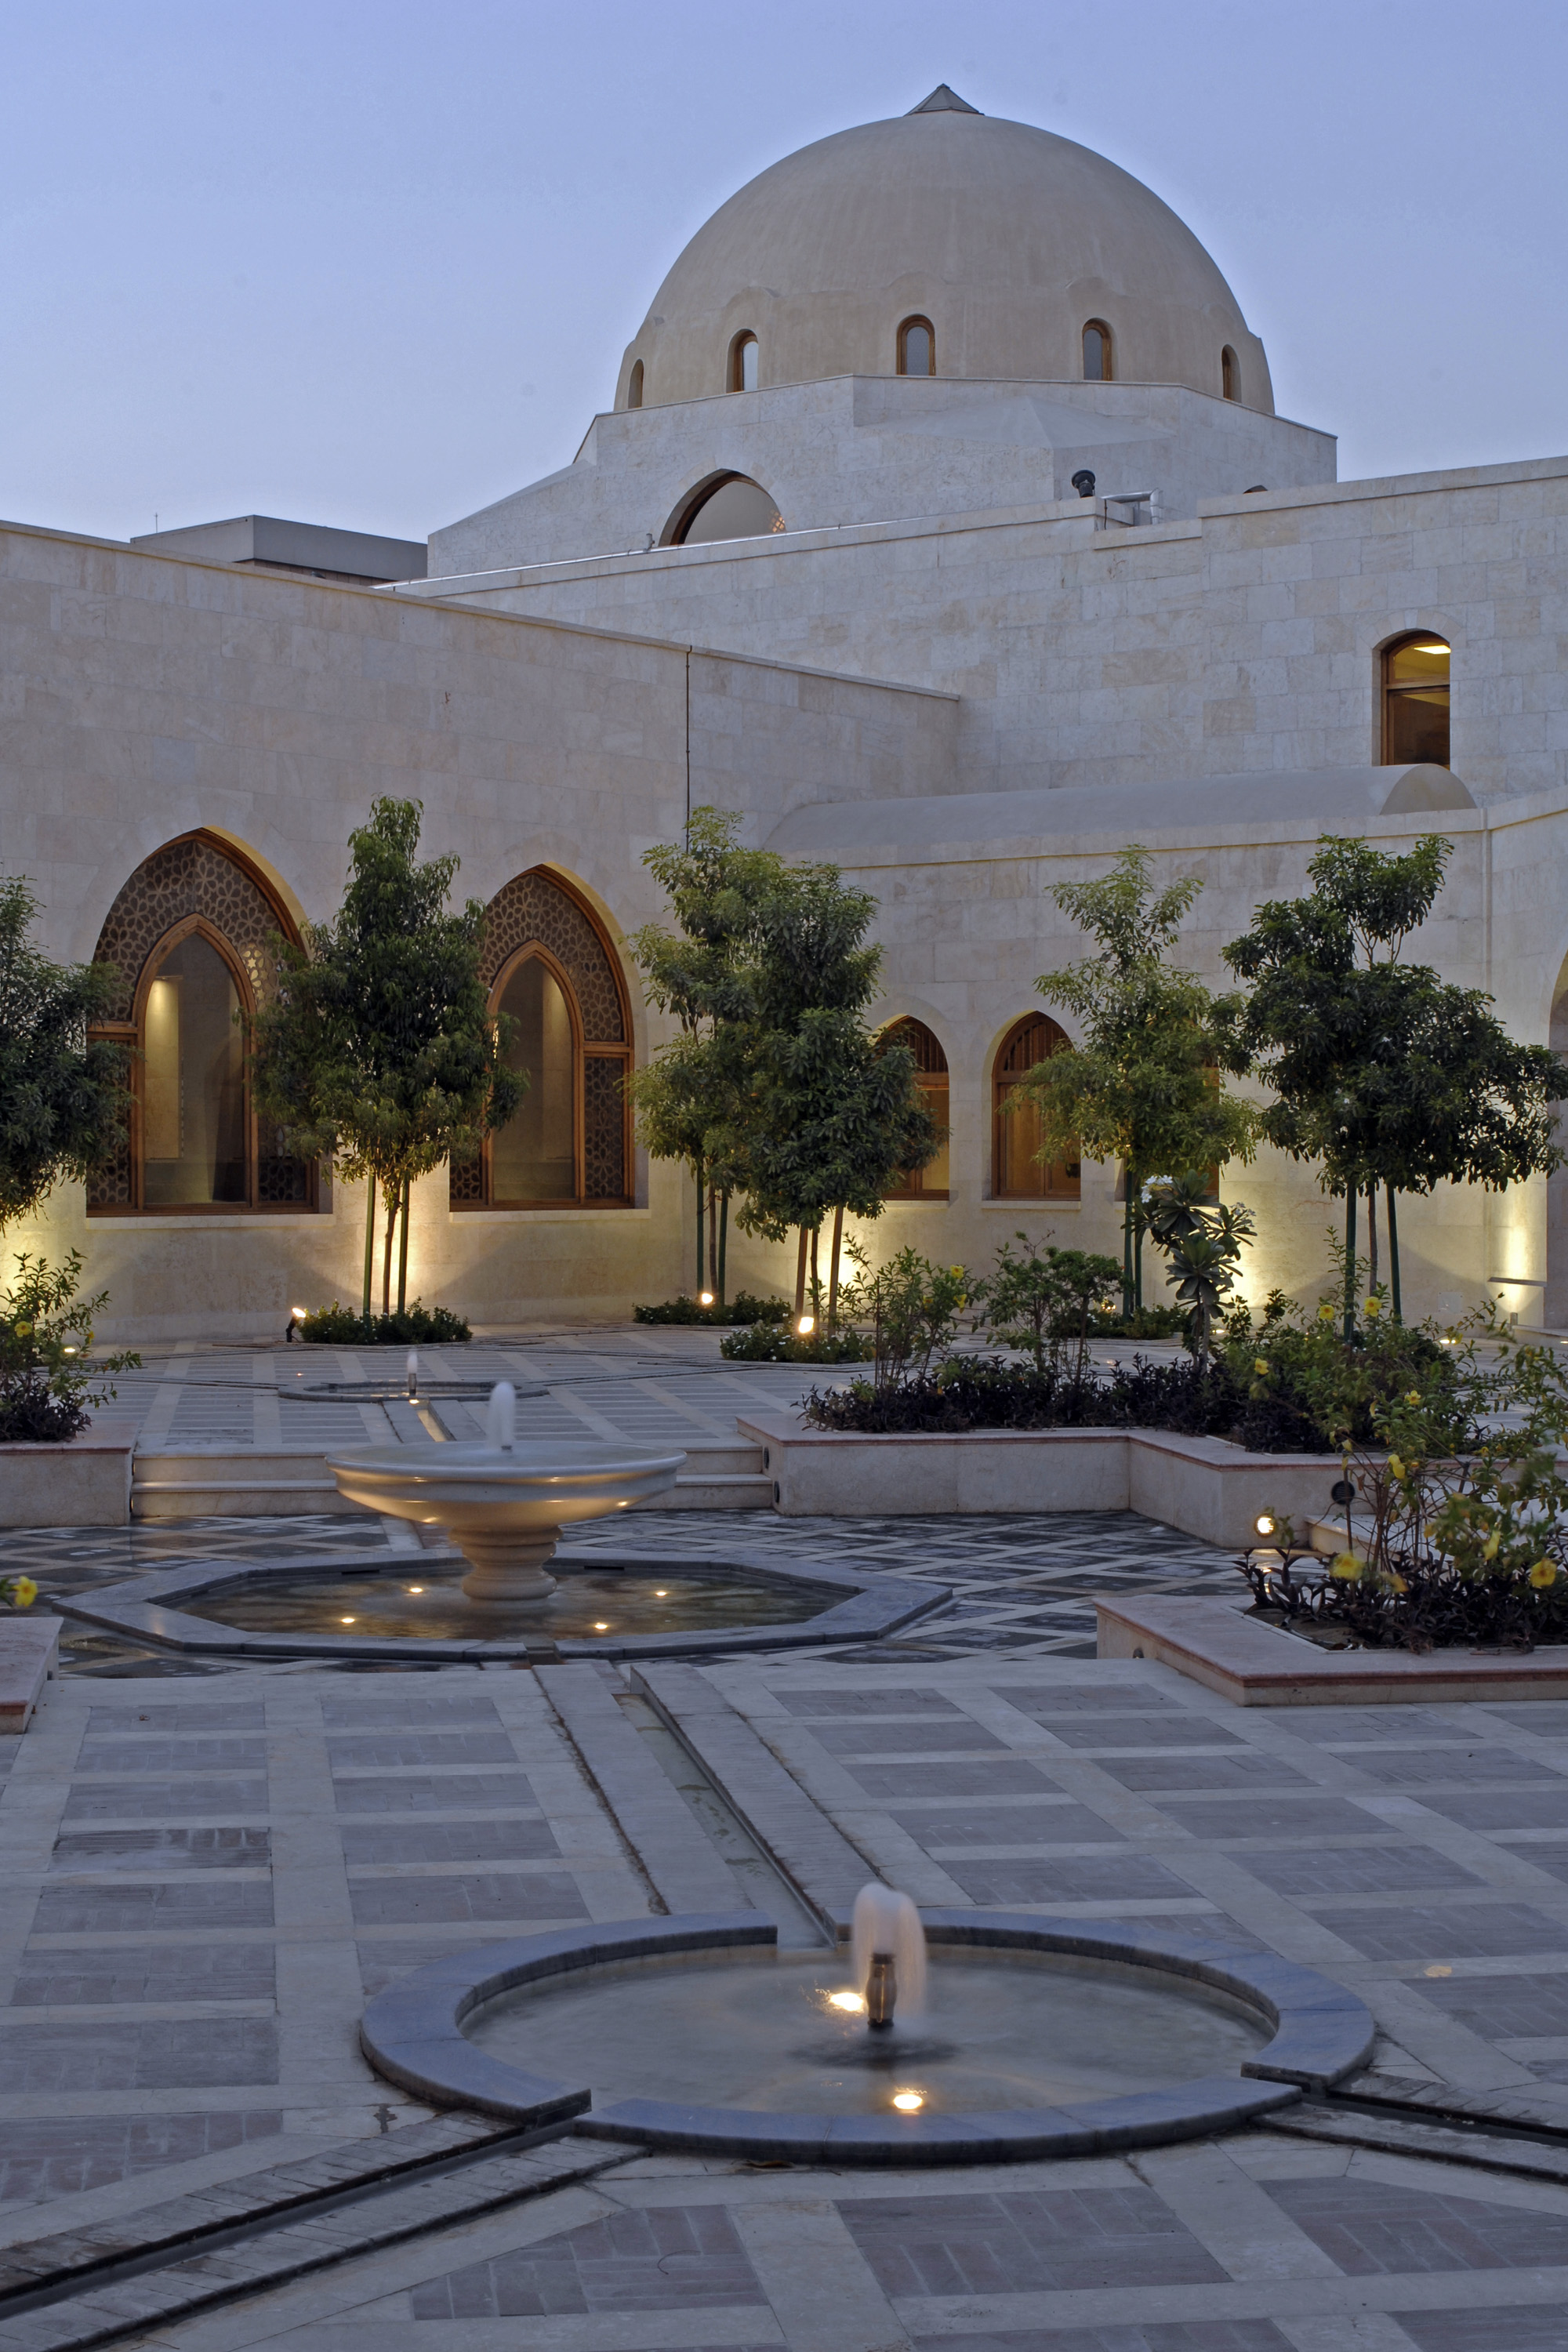 The main courtyard of the Ismaili Centre Dubai. Photo: Gary Otte